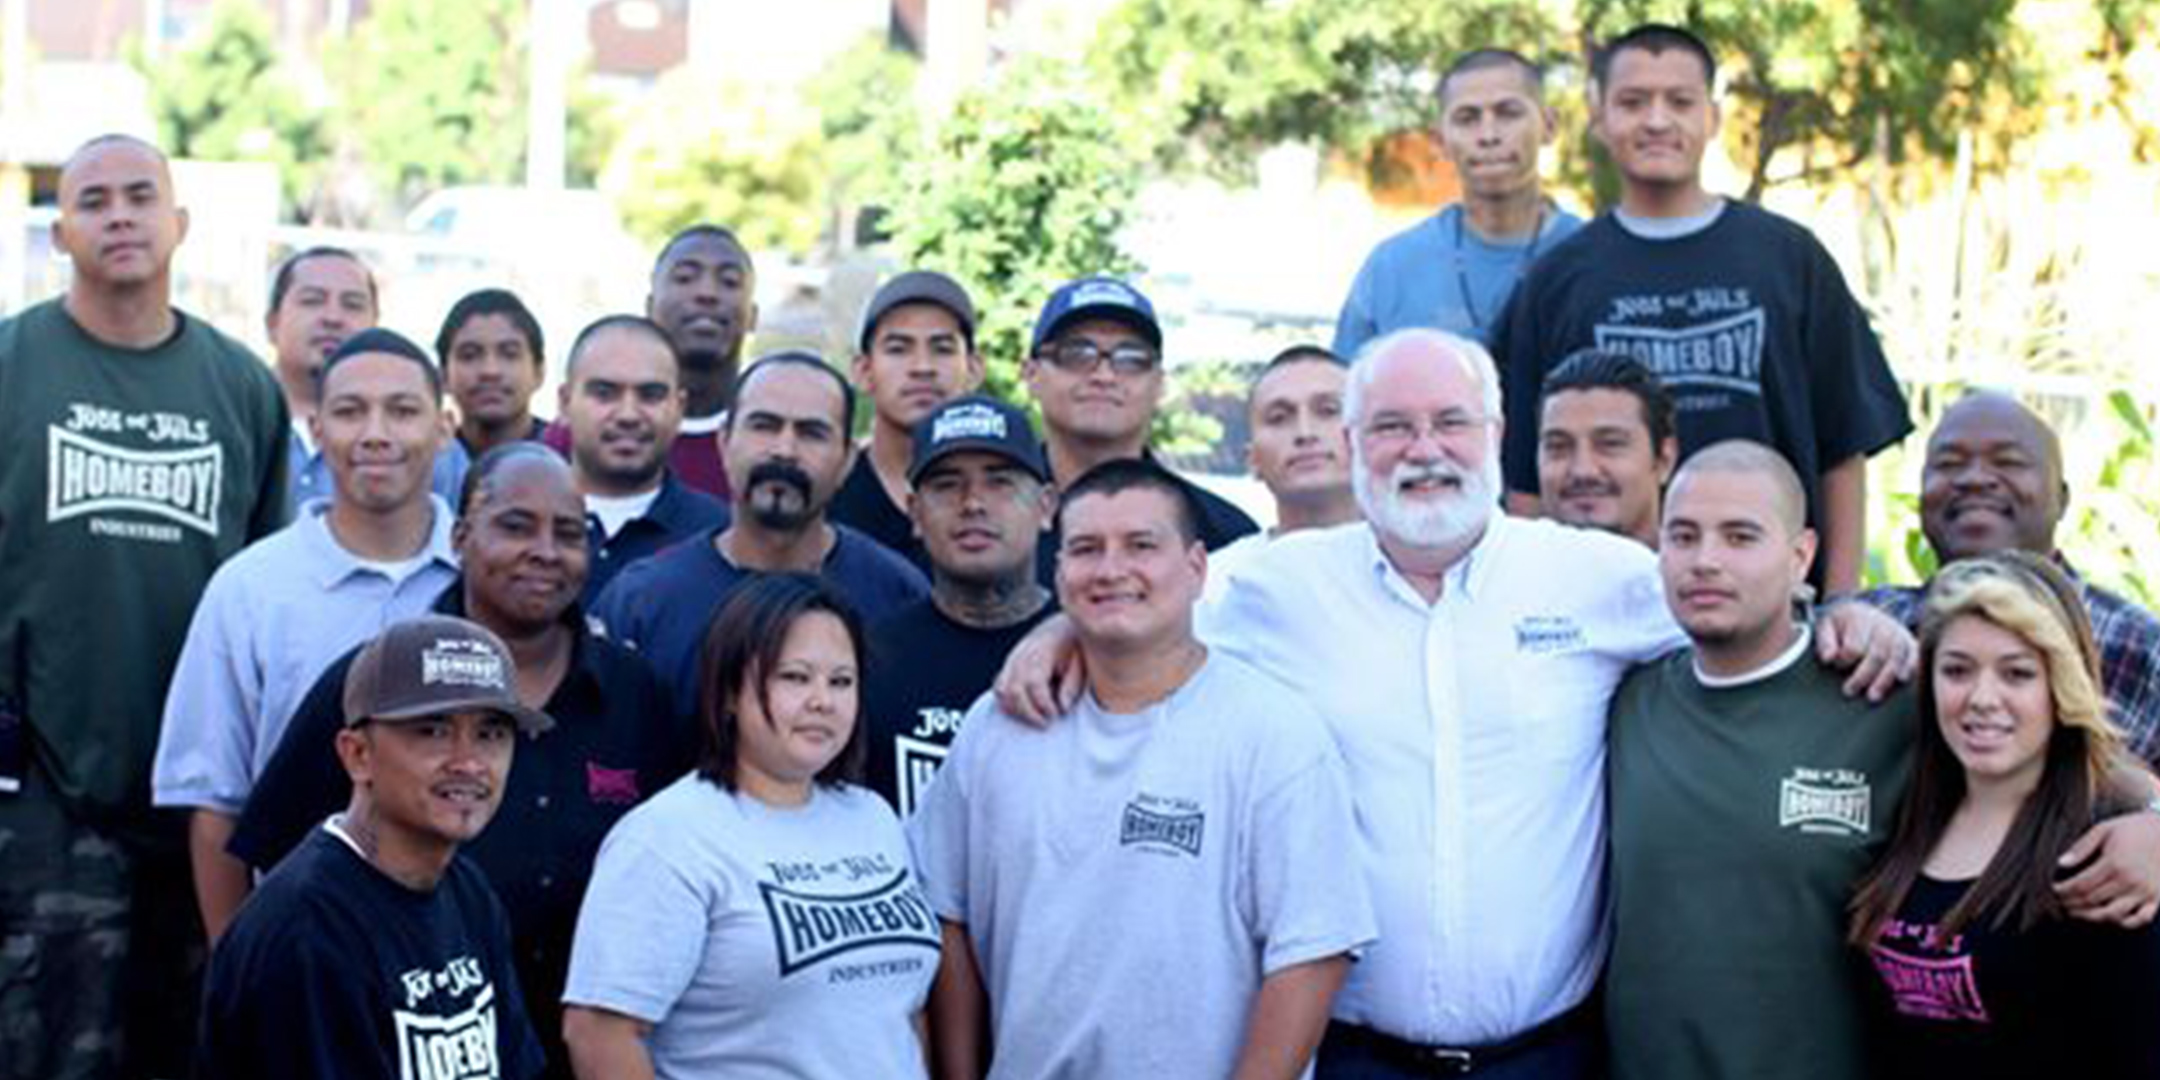 Father Greg Boyle with Group from HomeBoy Industries